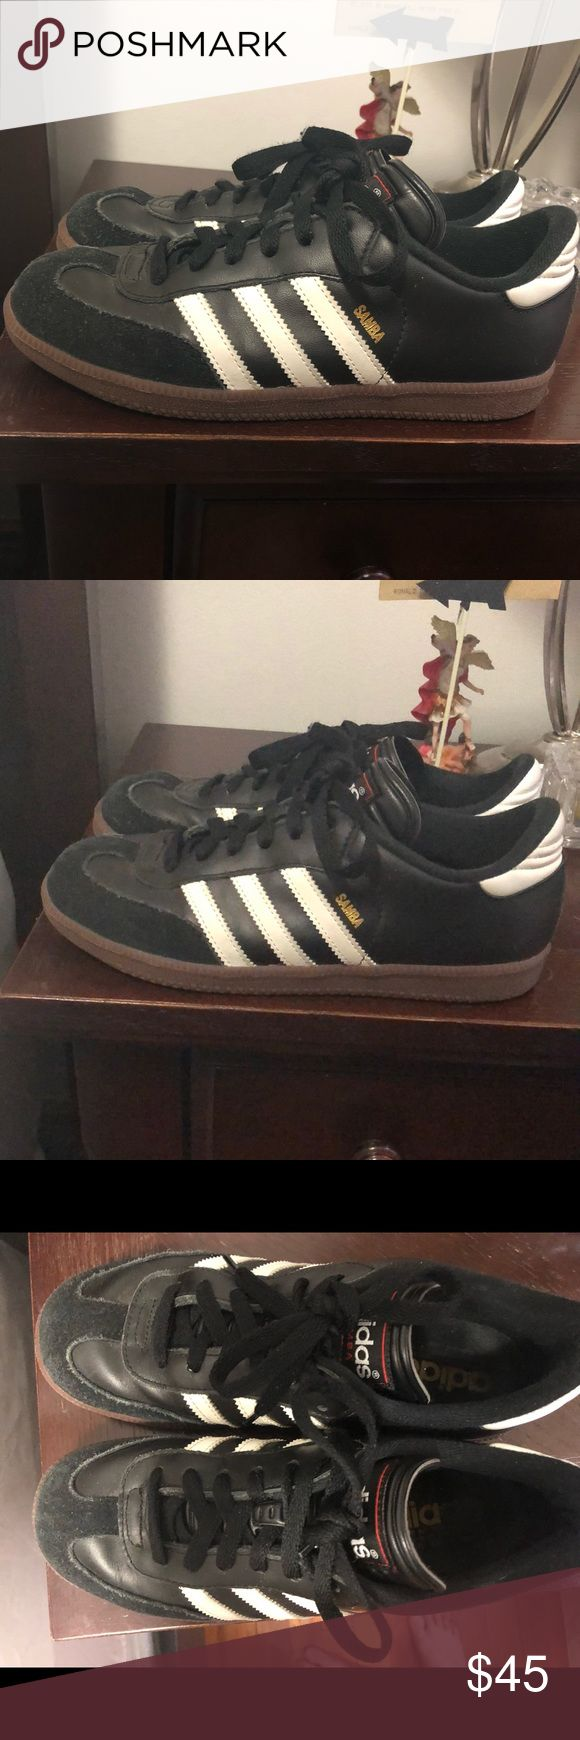 Adidas Samba Sneakers Size 5.5 in boys equivalent to 8 in women's adidas Shoes Sneakers